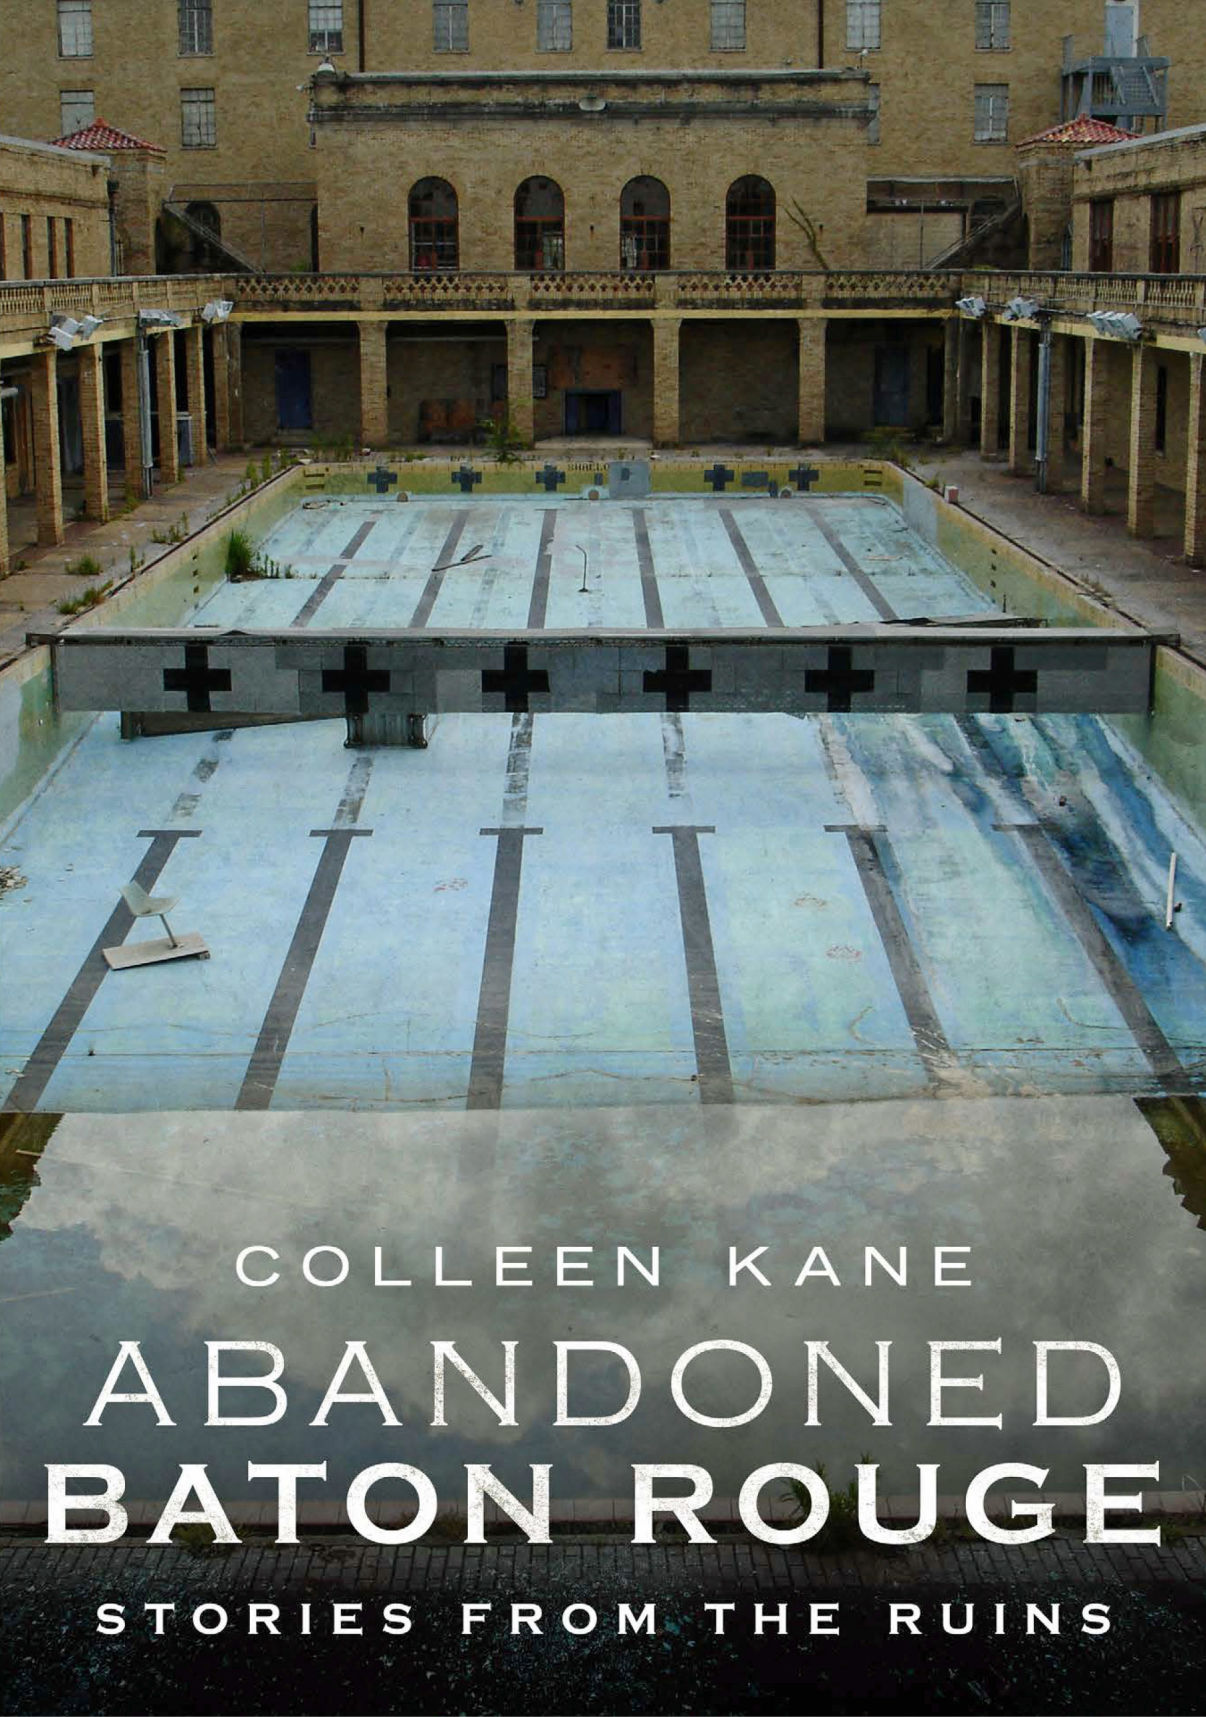 Haunting Photographs Of Overgrown Abandoned Baton Rouge Places Compiled In New Book See Images Entertainment Life Theadvocate Com